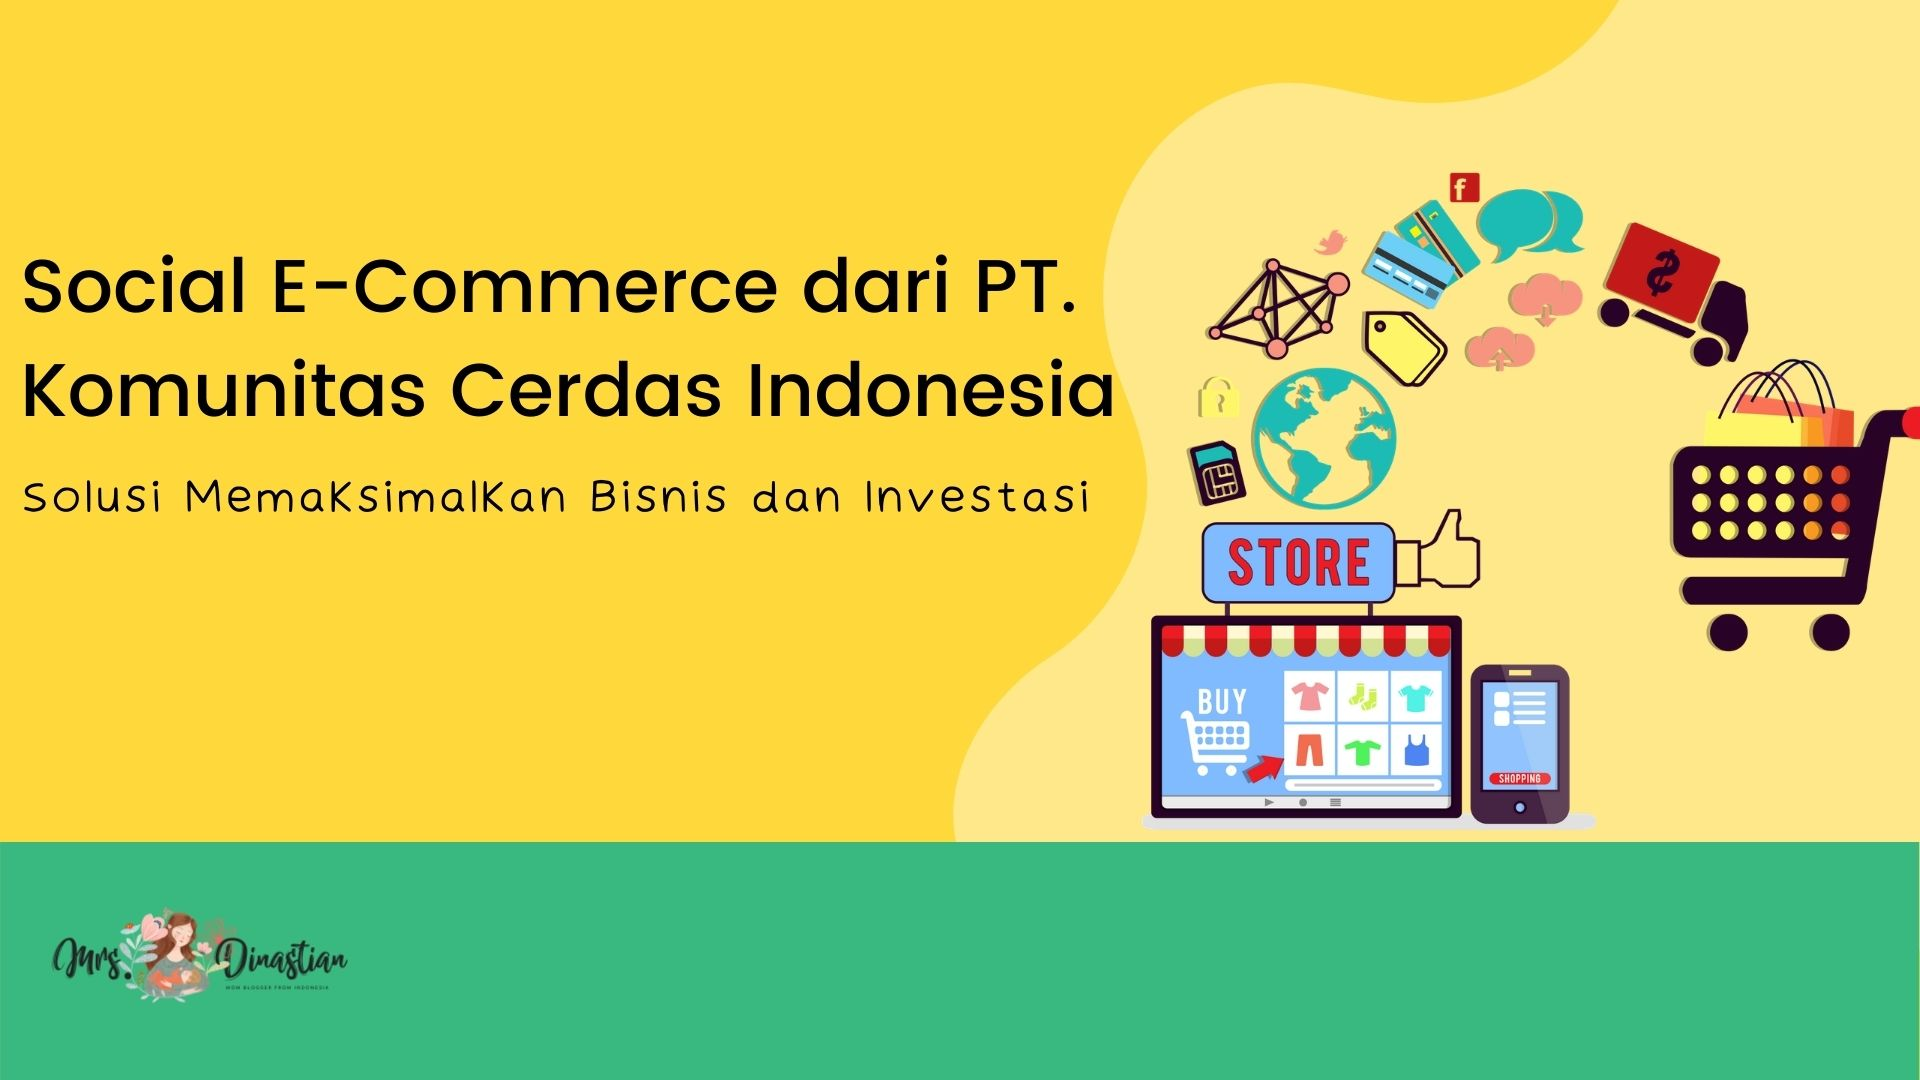 Social e-commerce PT. KCI